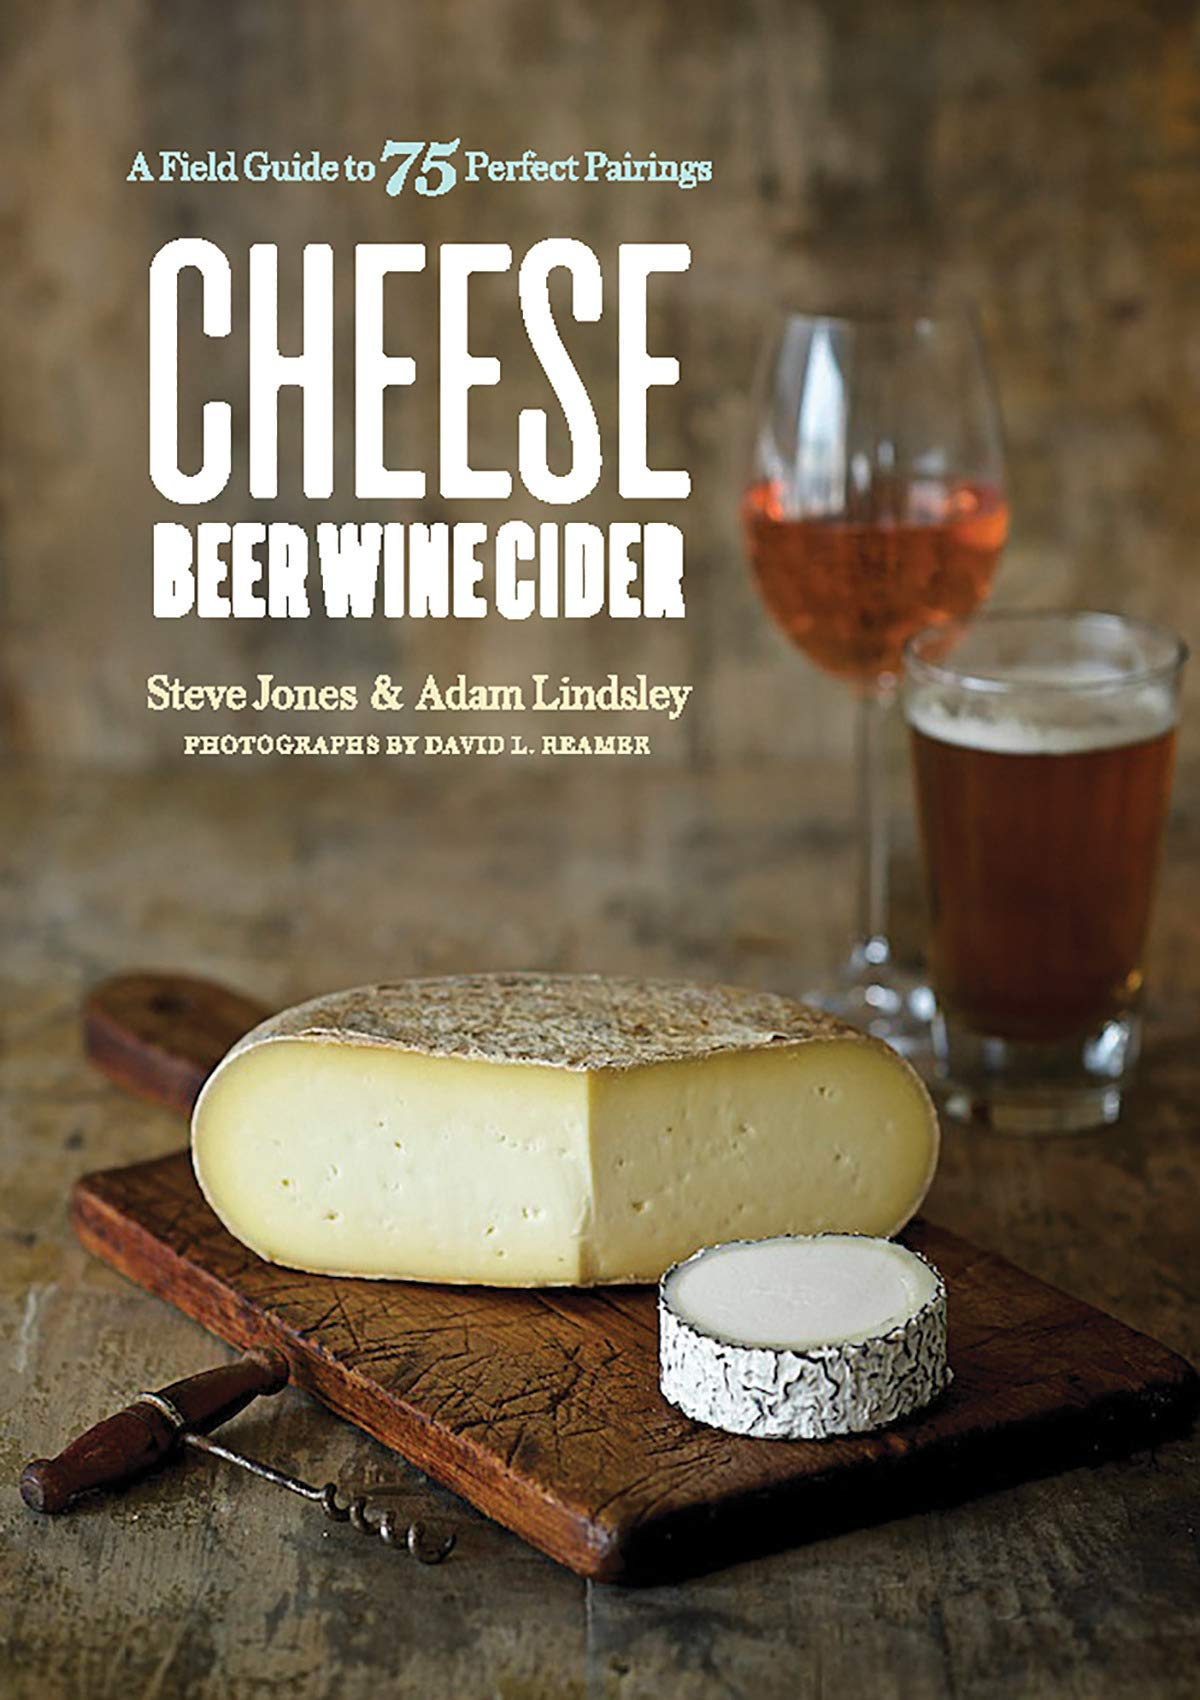 Cheese Beer Wine Cider - A Field Guide to 75 Perfect Pairings Front Cover